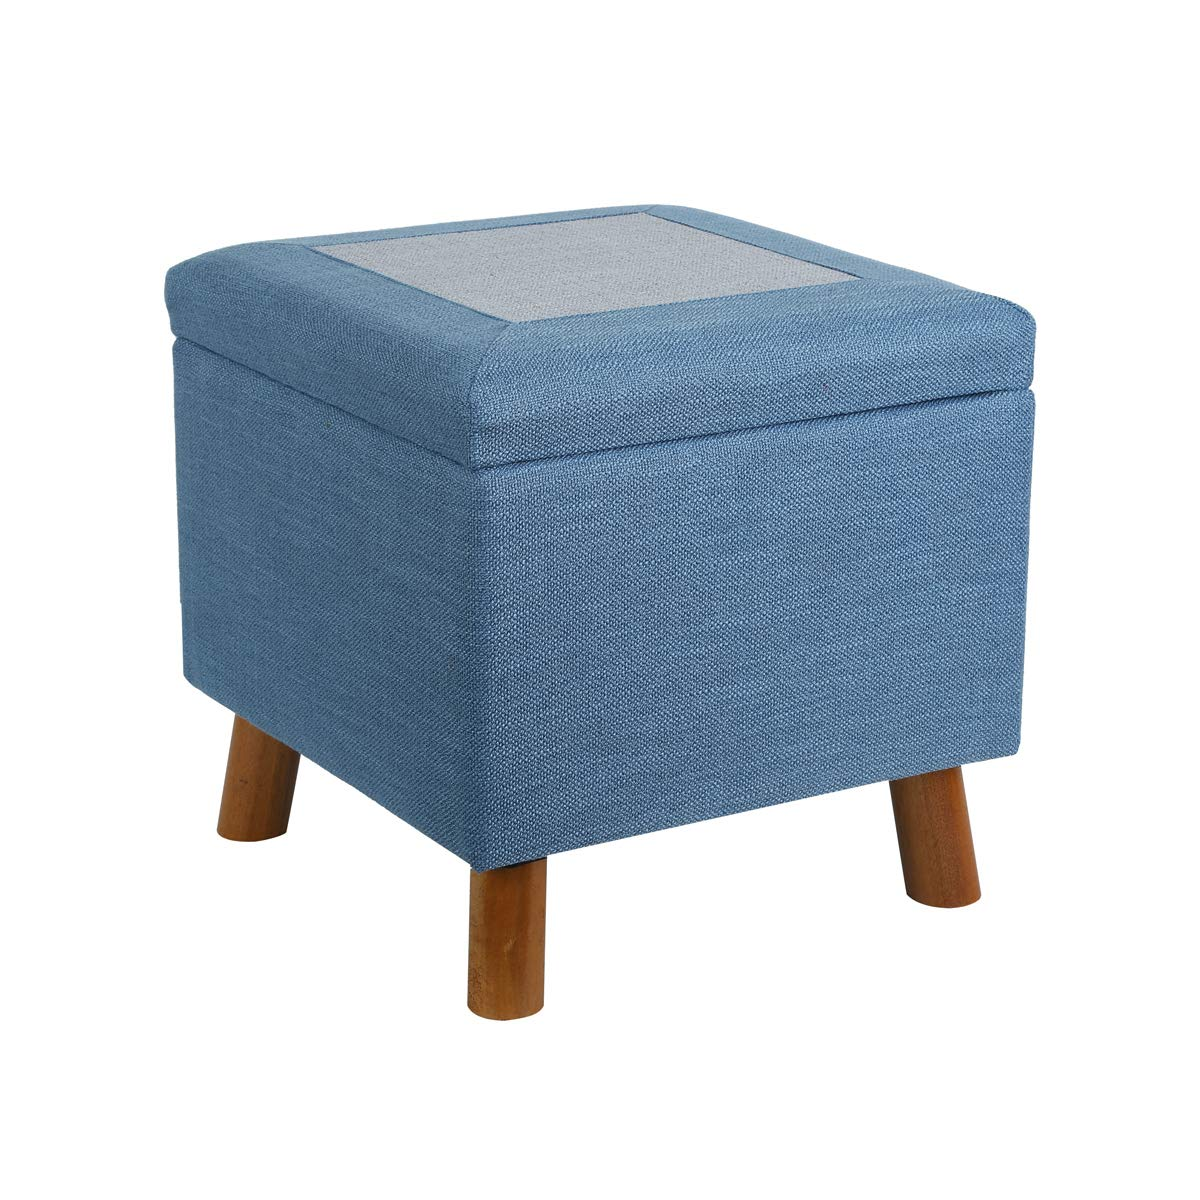 Beau Amazon.com: Eshow Ottoman With Storage Ottoman Cube Storage Foot Stools  Square Ottoman Pouf With Thickened Solid Wood Frame: Kitchen U0026 Dining